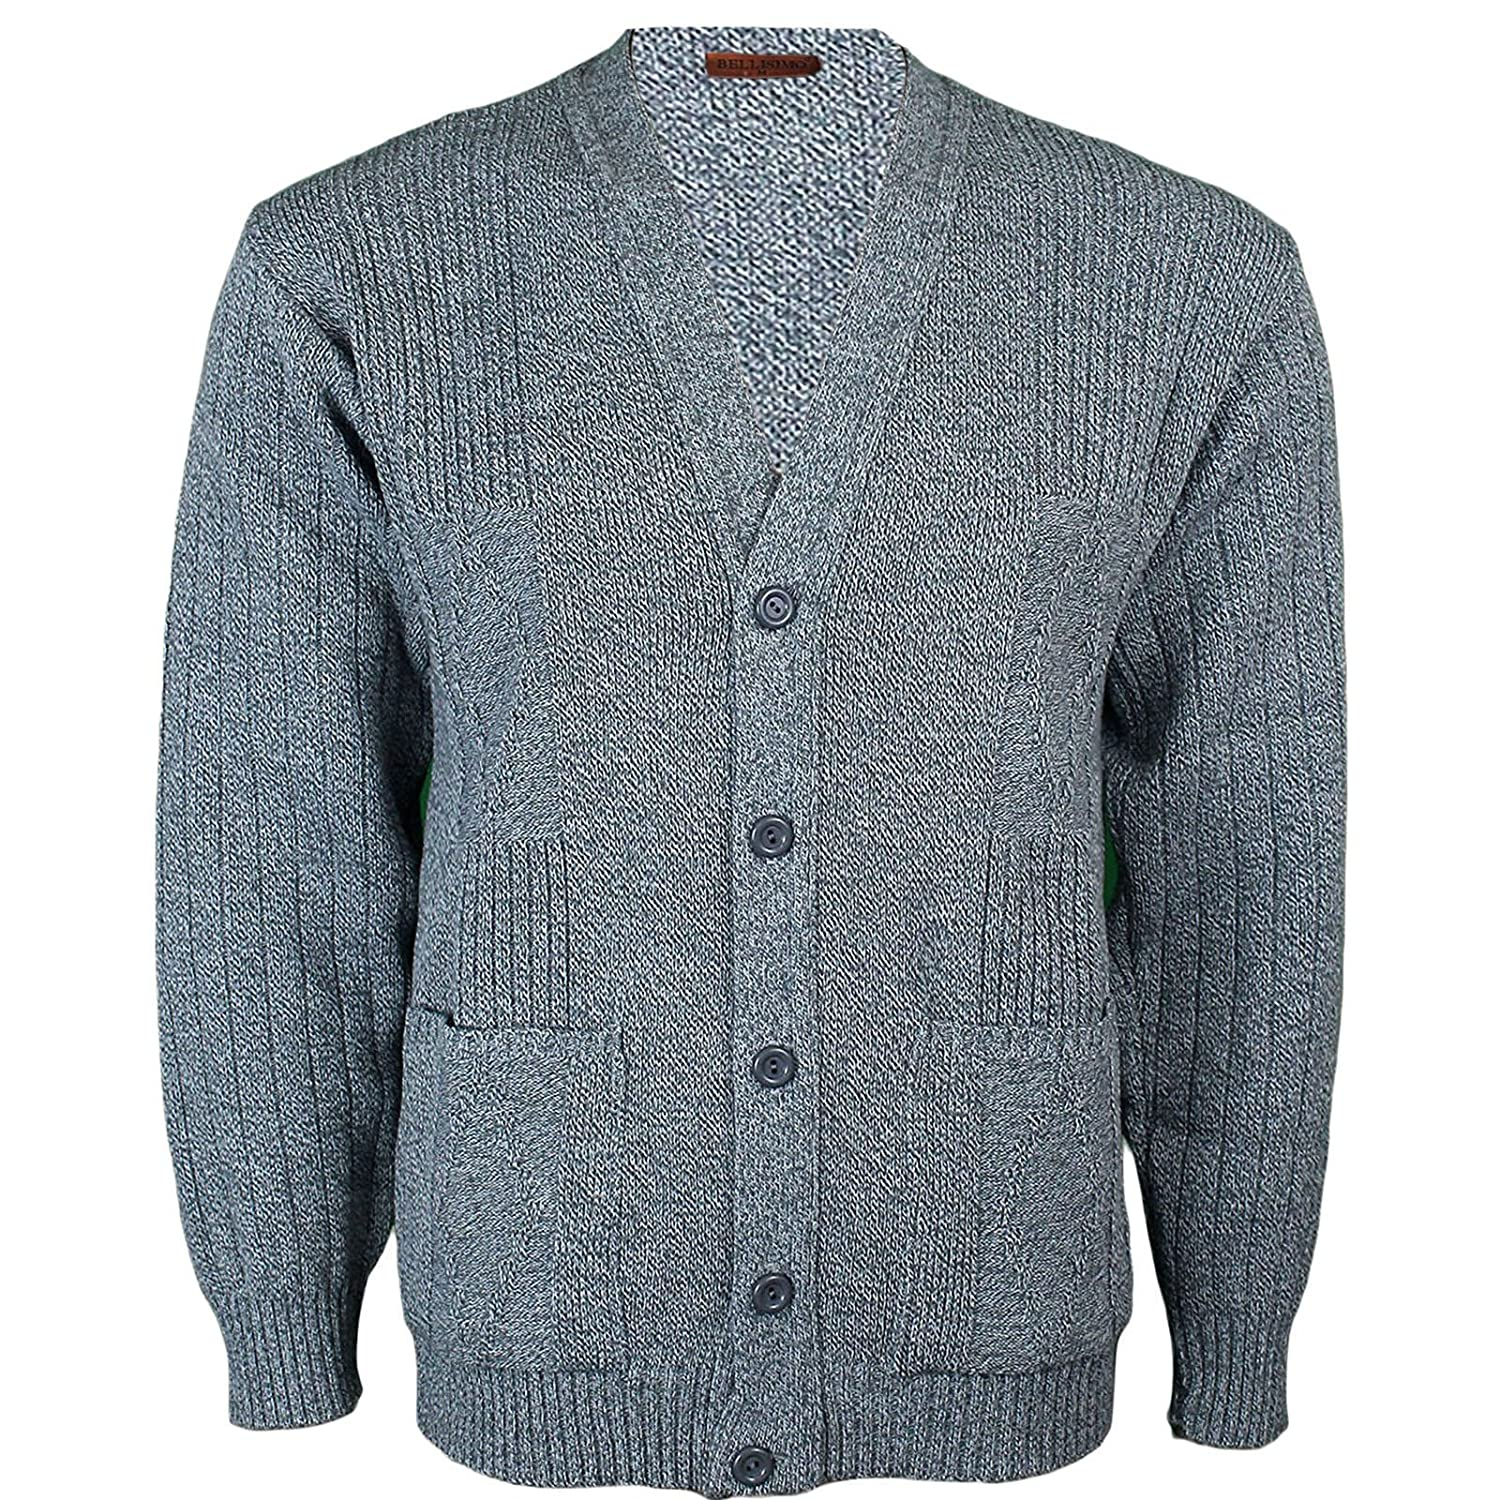 Mens Knitted Cardigan Classic Style V Neck Button WITH POCKETS ...